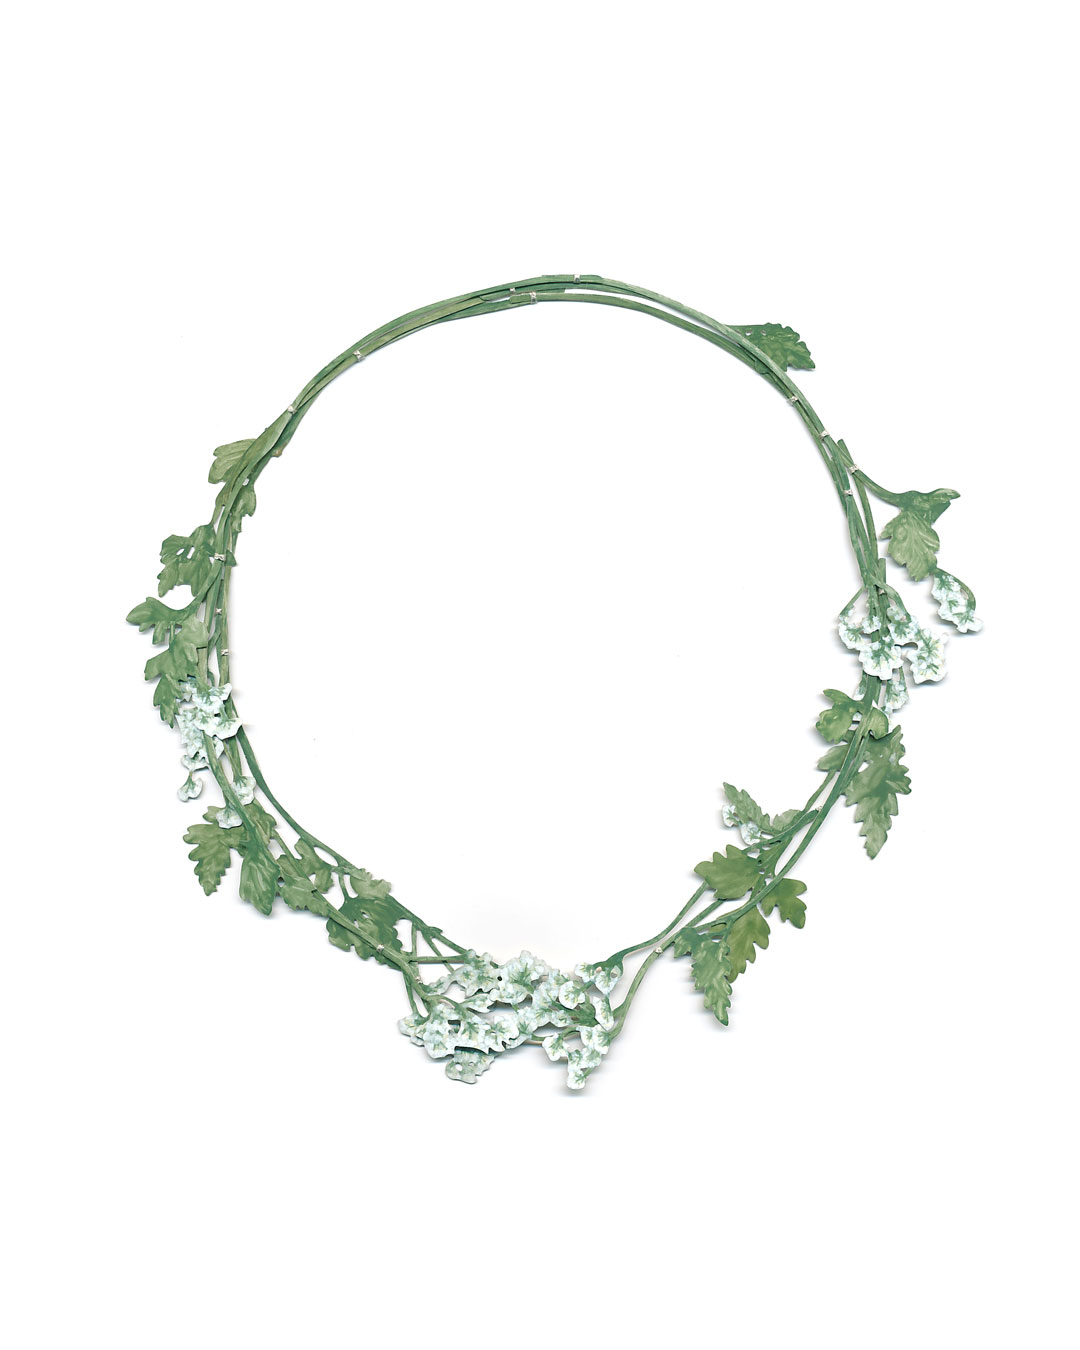 Christopher Thompson Royds, Natura Morta: Cow Parsley, 2016, necklace; silver, hand-painted, 175 x 180 mm, €3500